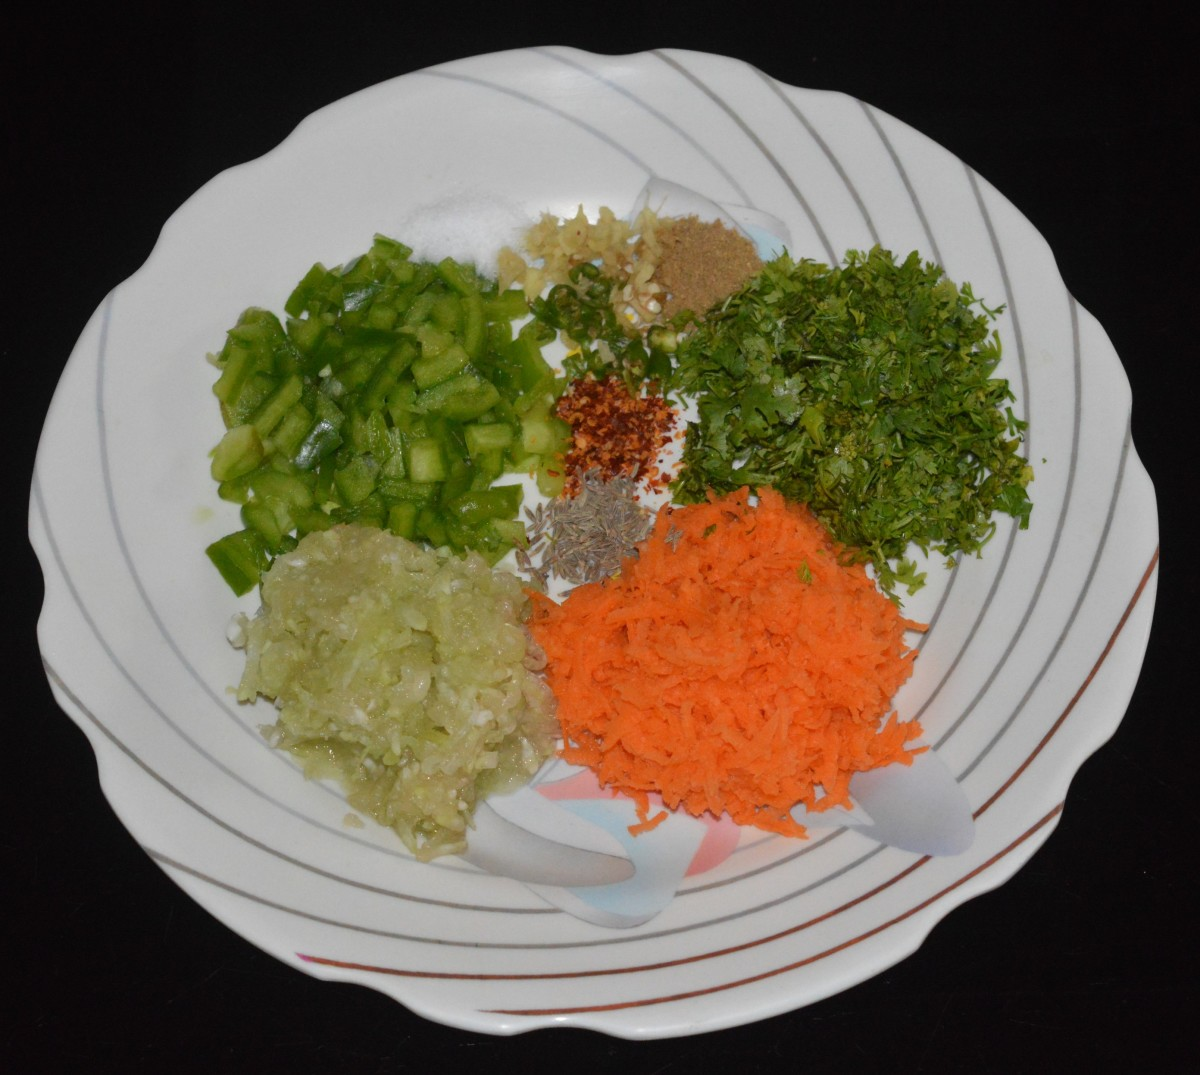 Chopped veggies and spices